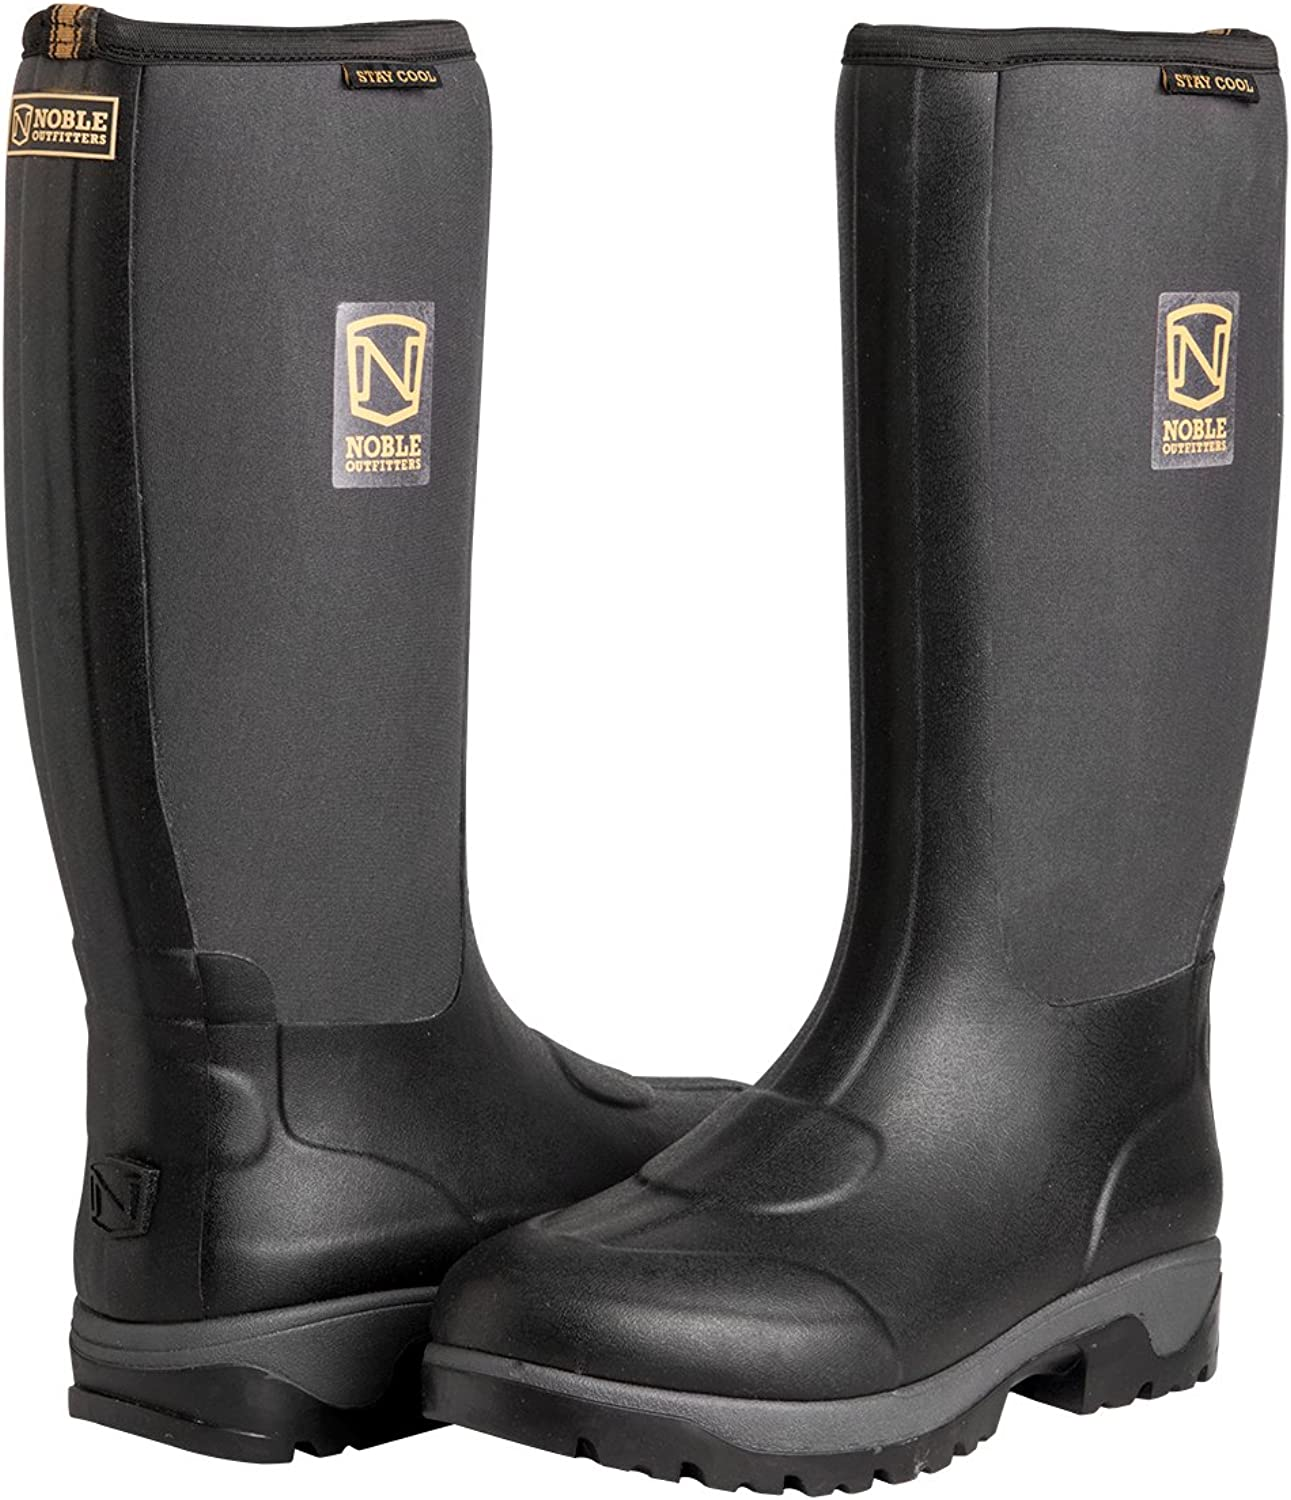 Noble Outfitters 65006-019 Mens MUDS Stay Cool High boot 7D (M) US